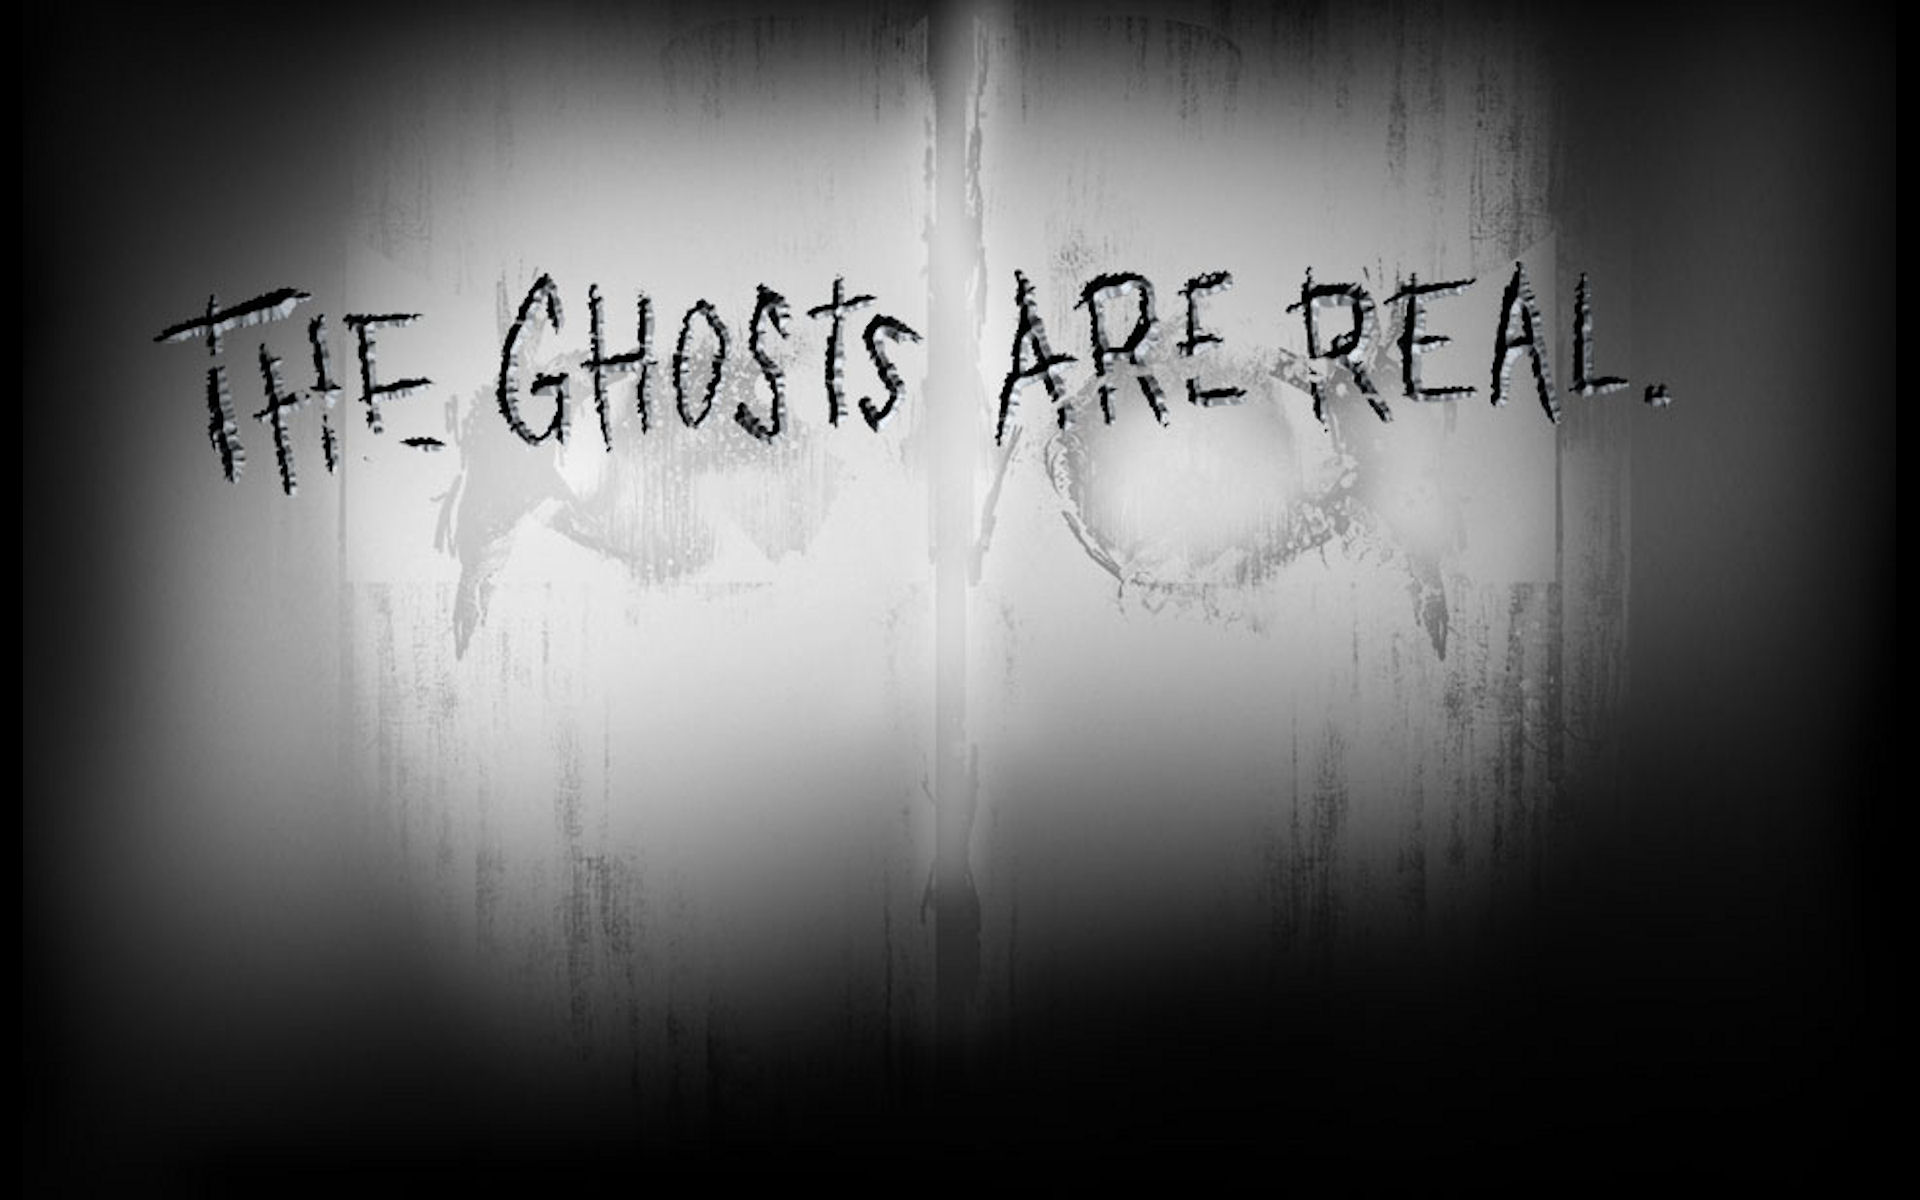 Call Of Duty Ghosts Ghost Dark Halloween Scary Wallpaper 1920x1200 151872 WallpaperUP